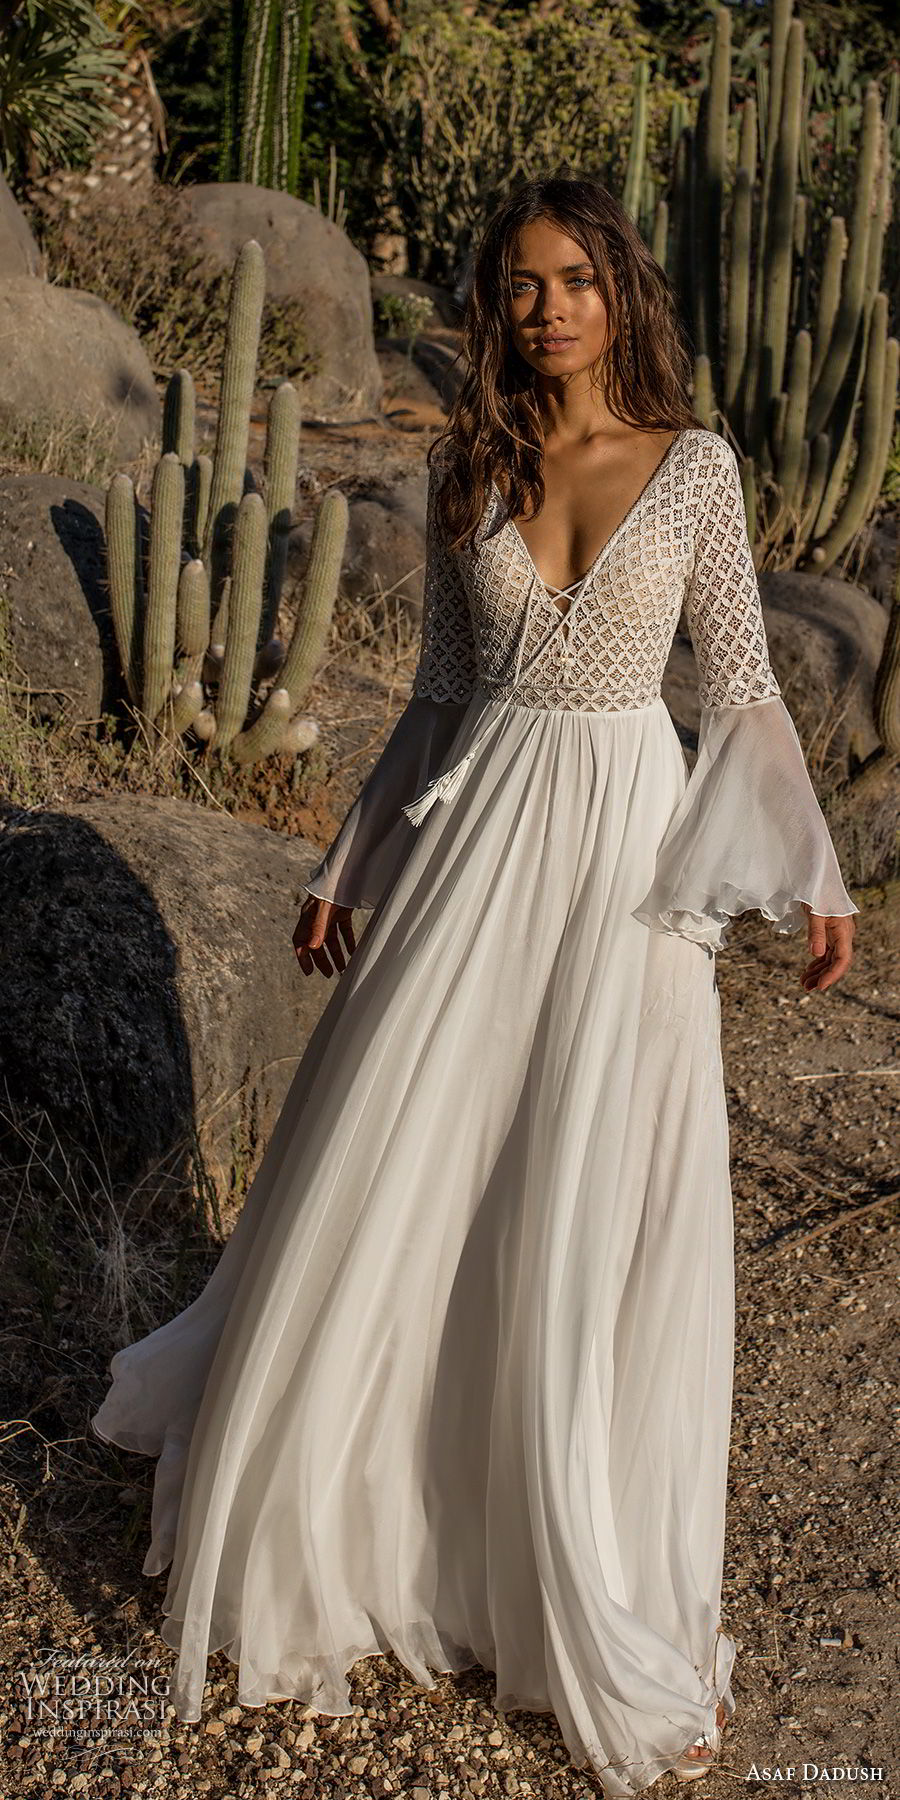 asaf dadush 2018 bridal long lantern sleeves deep v neckline heavily embellished bodice romantic bohemian soft a line wedding dress open back sweep train (2) mv